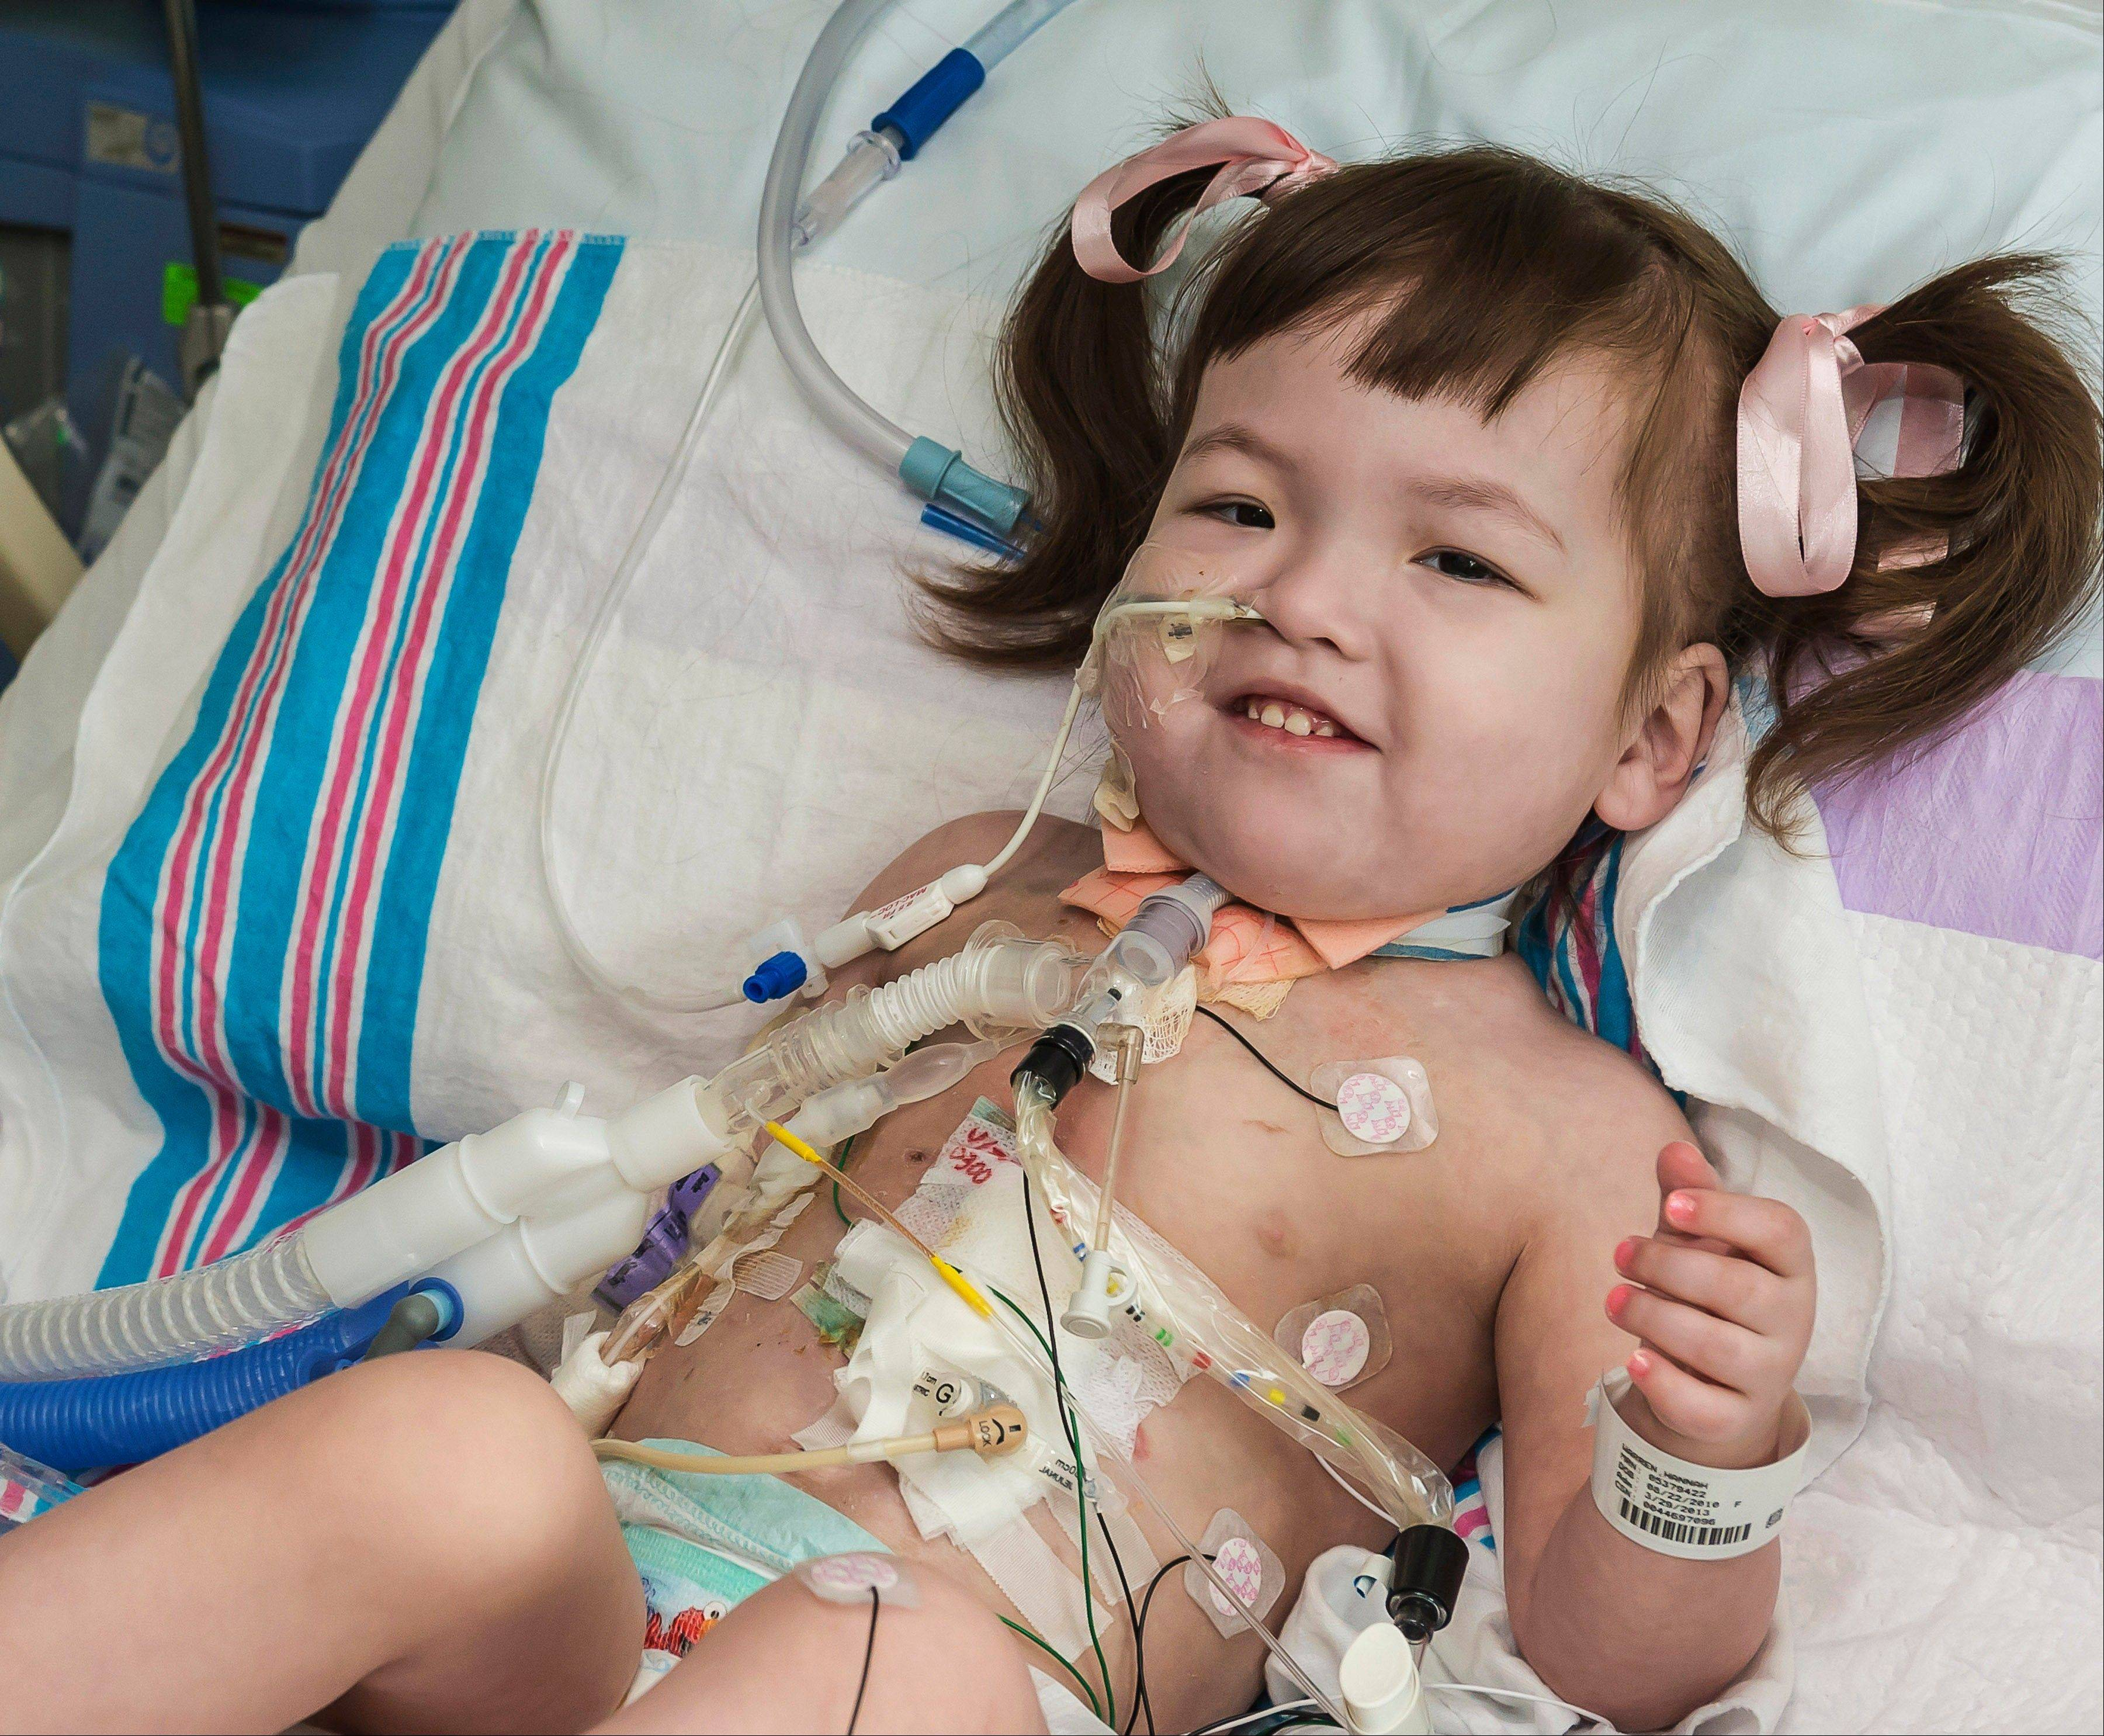 Hannah Warren, 2, lies in bed in a post-op room at the Children's Hospital of Illinois in Peoria about two weeks after having received a new windpipe in a landmark transplant operation on April 9, 2013.